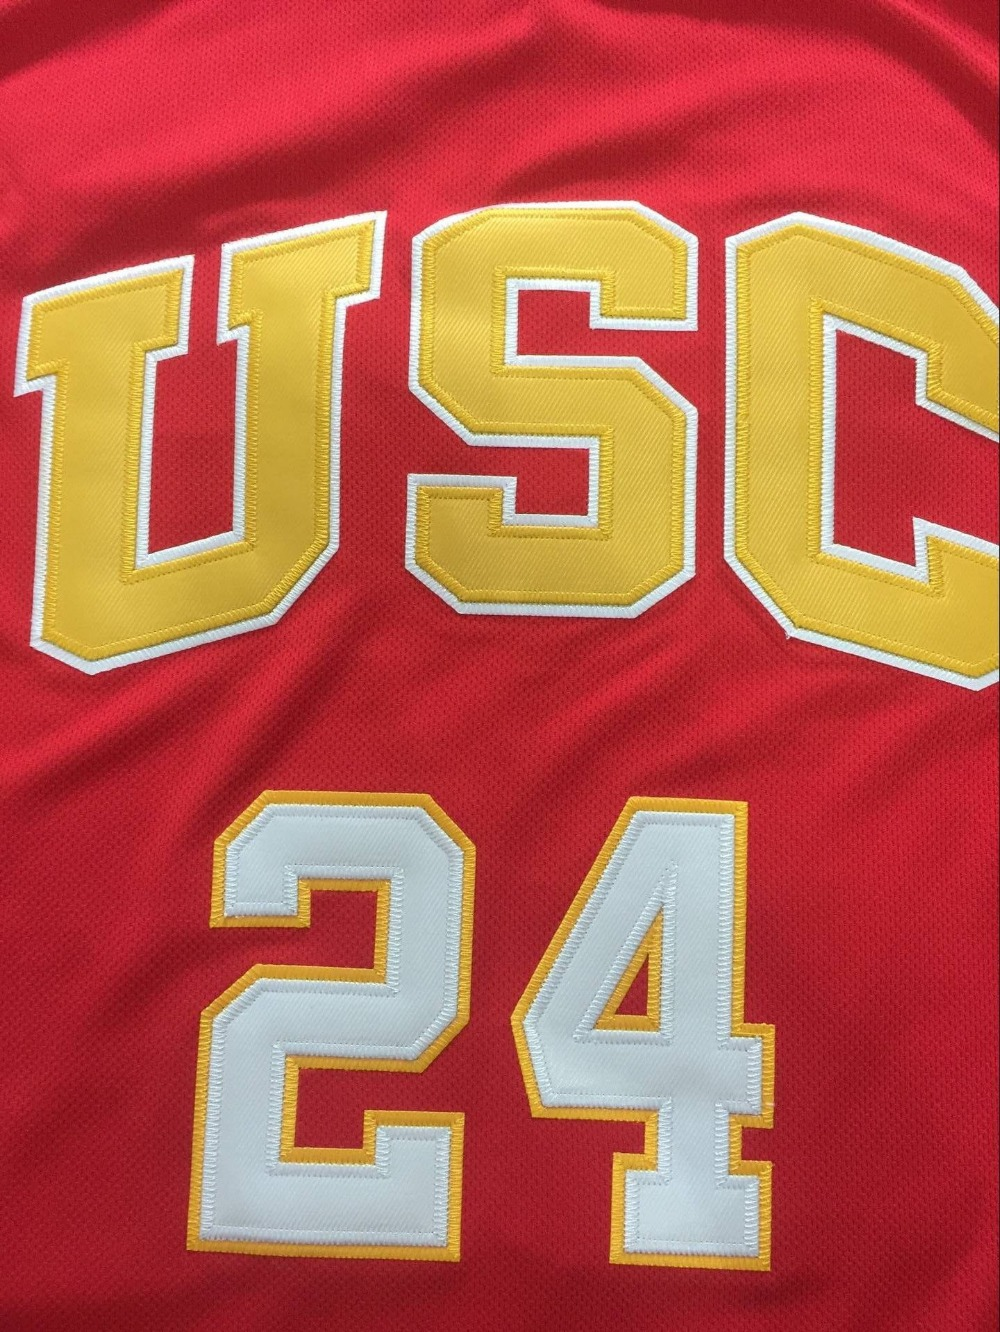 australia usc trojans 24 brian scalabrine usc university of southern  california jerseymen throwback college basketbal 8cc1f 91397a094